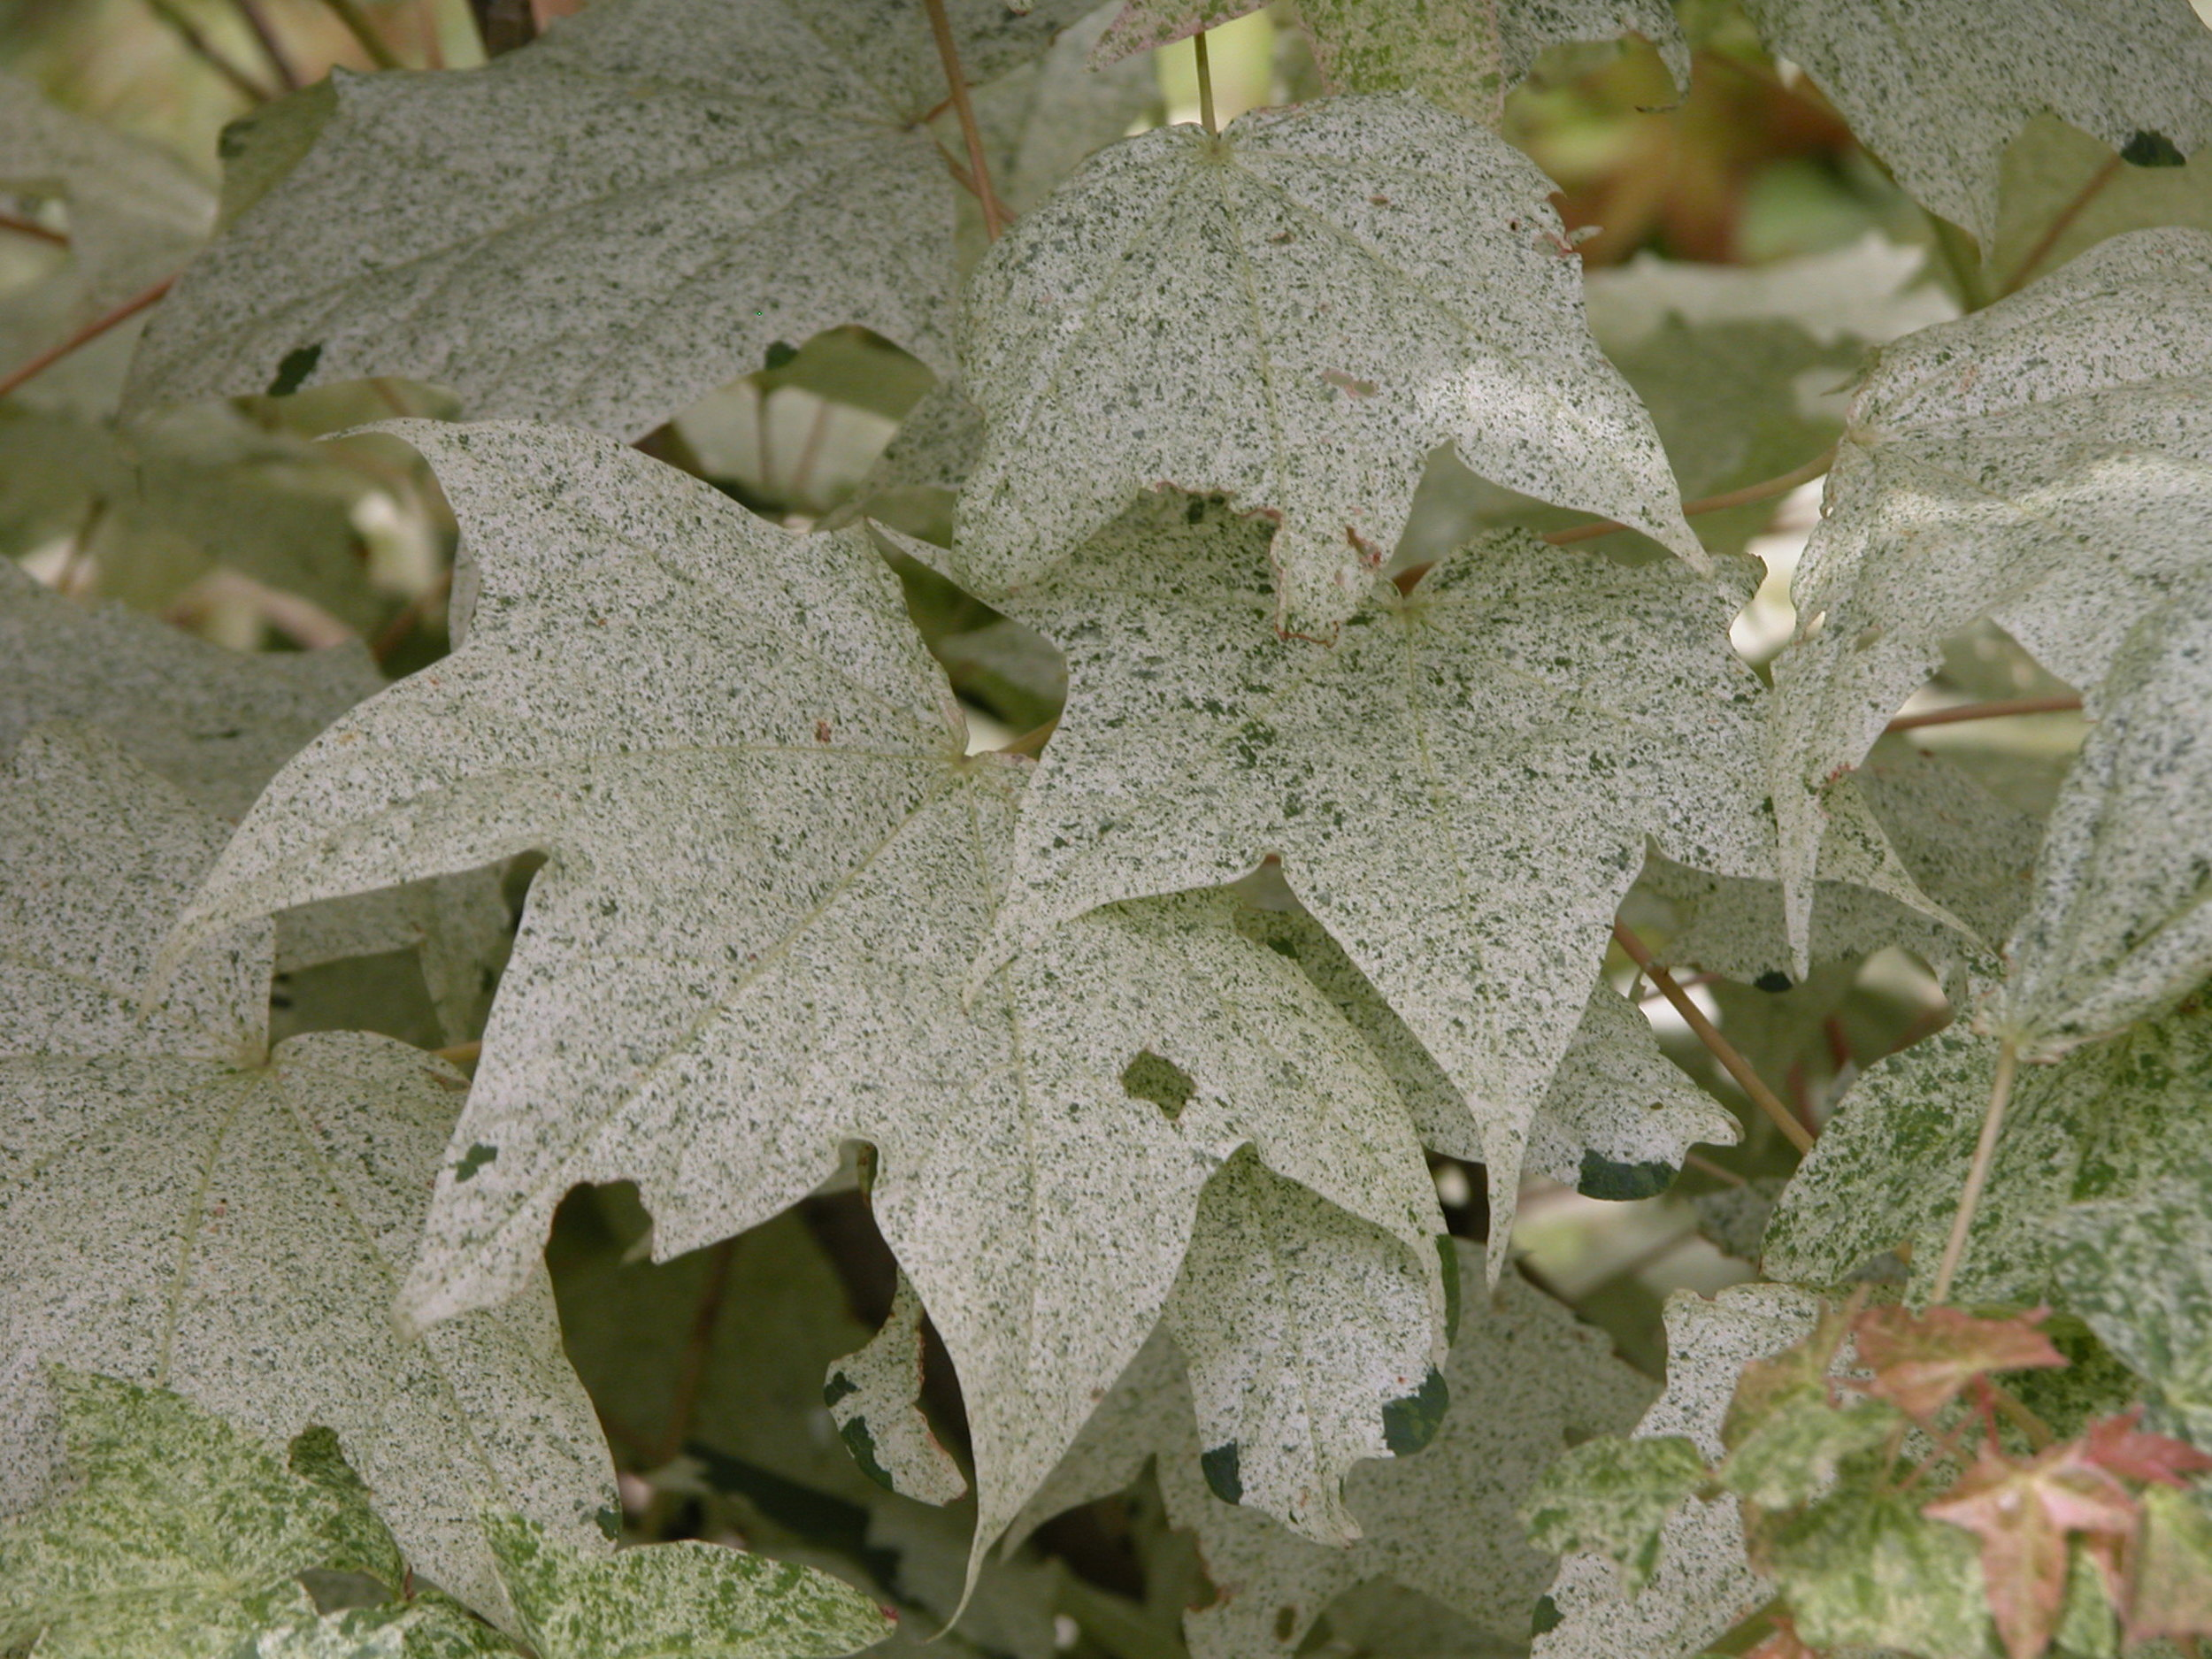 The drool-worthy speckled foliage of Acer pictum 'Naguri Nishiki'.